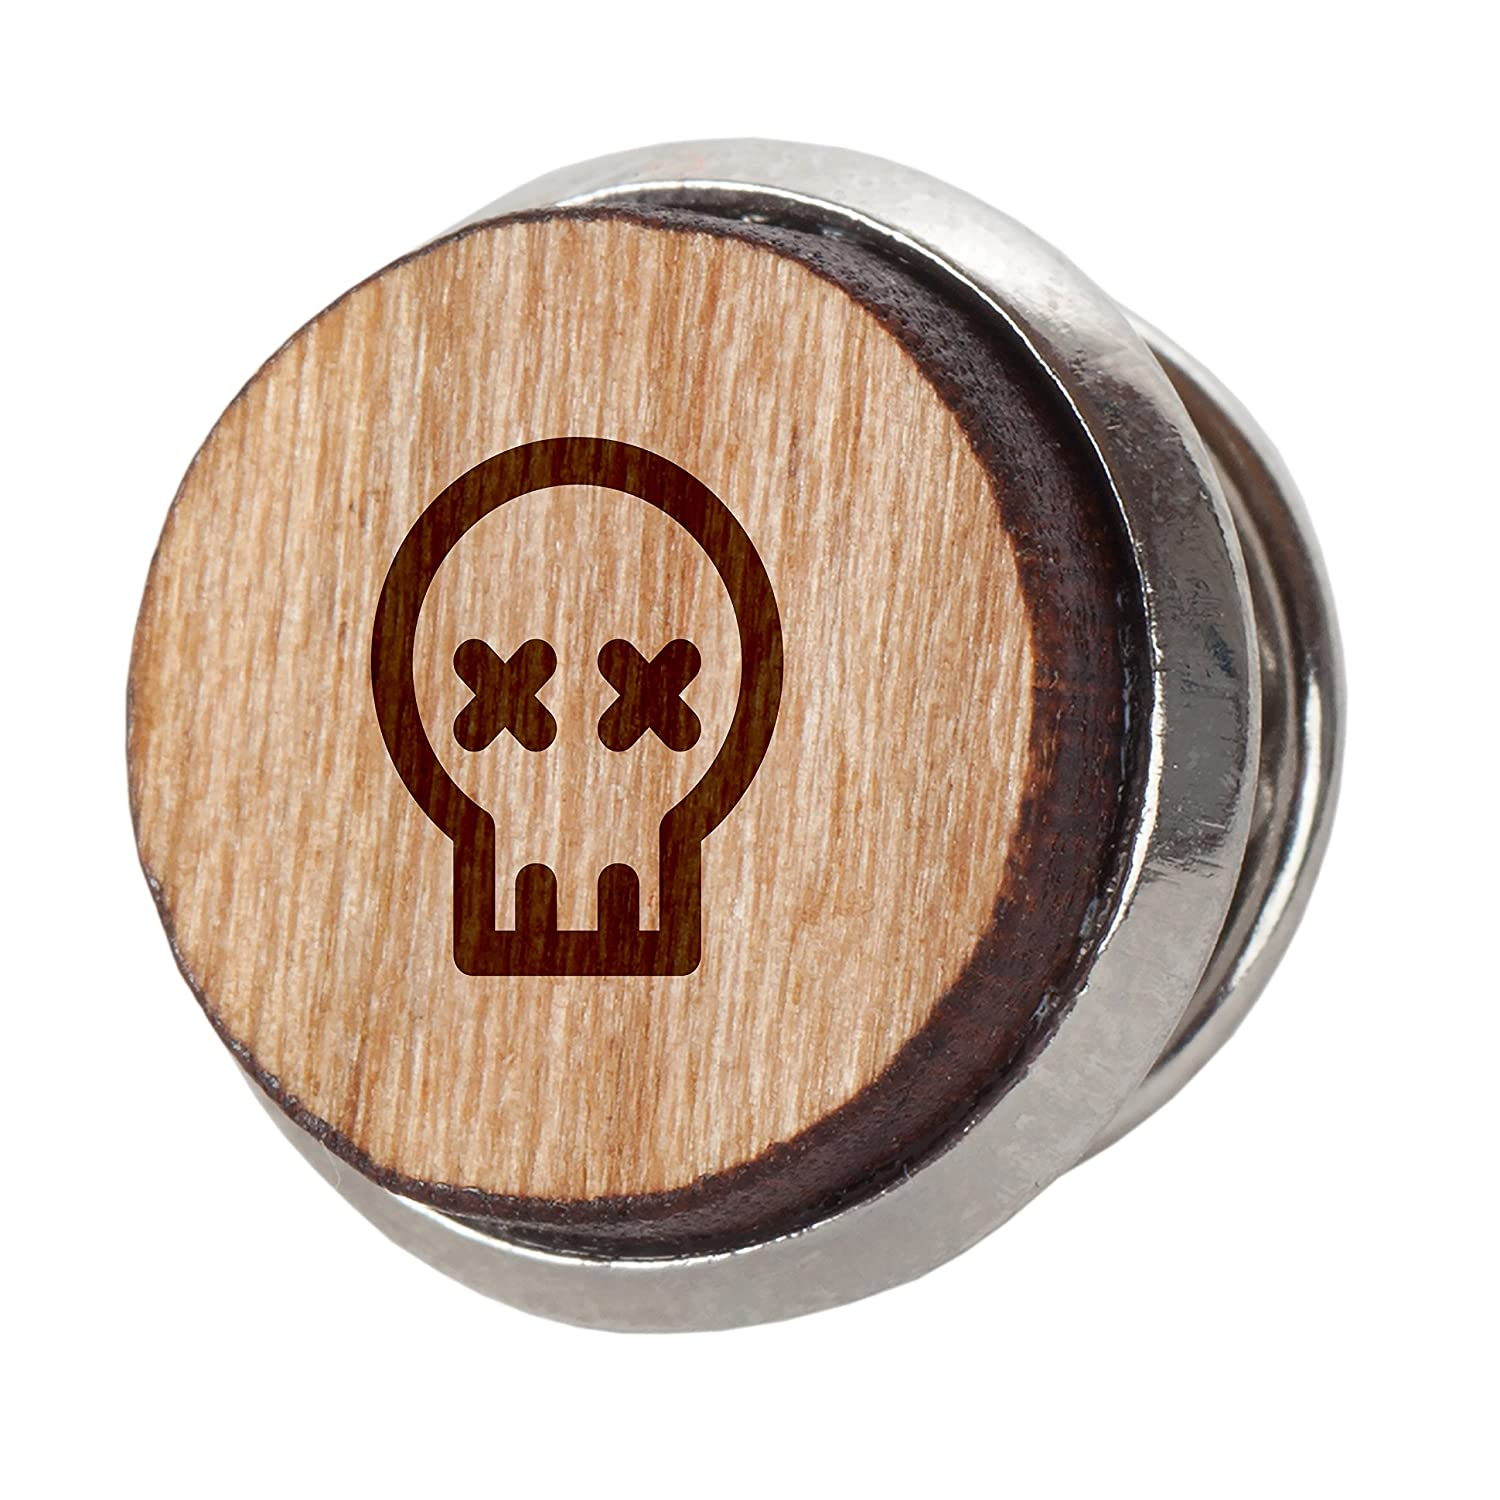 Engraved Tie Tack Gift 12Mm Simple Tie Clip with Laser Engraved Design Cute Skull Stylish Cherry Wood Tie Tack